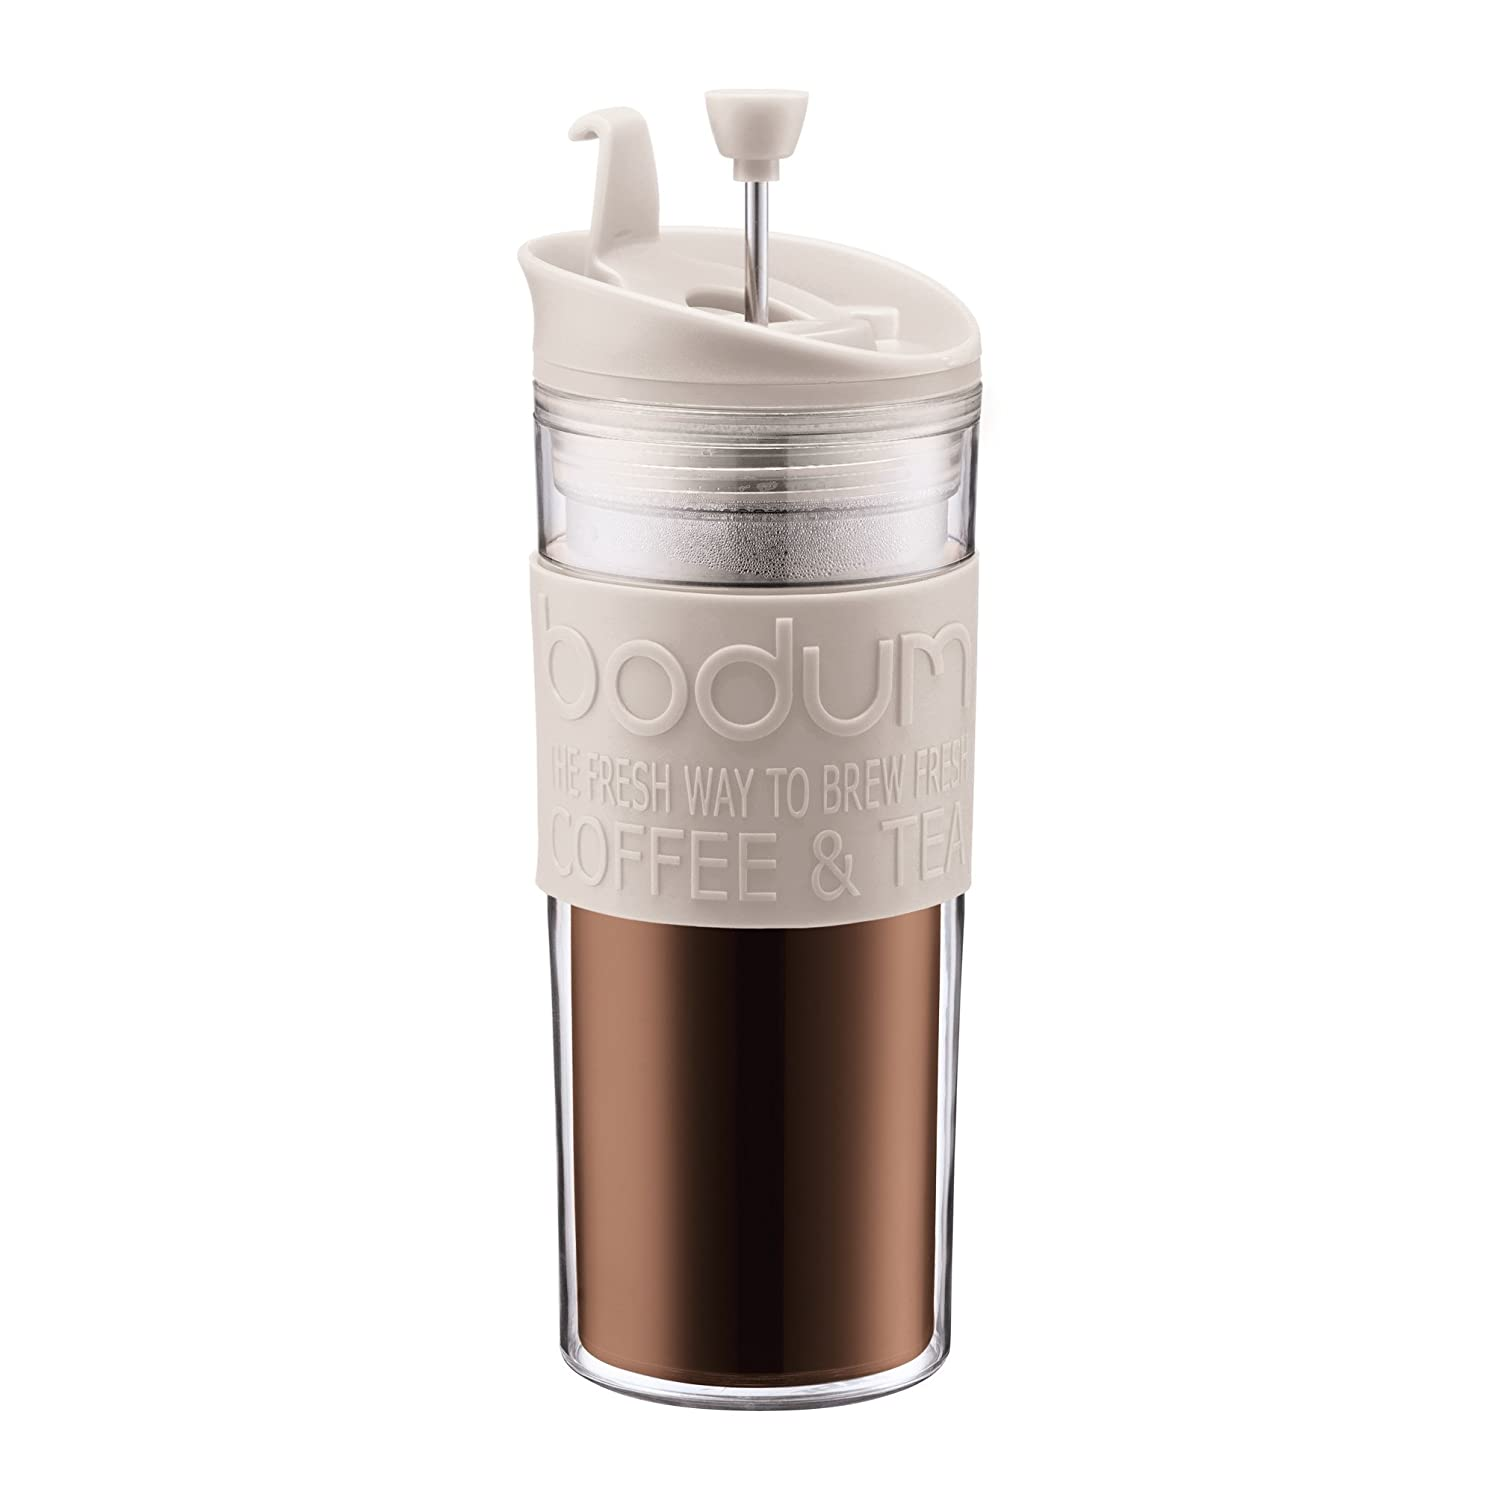 BODUM Travel French Press Coffee Maker, Plastic, White, 0.45 Litre 11100-913 11100-913_913